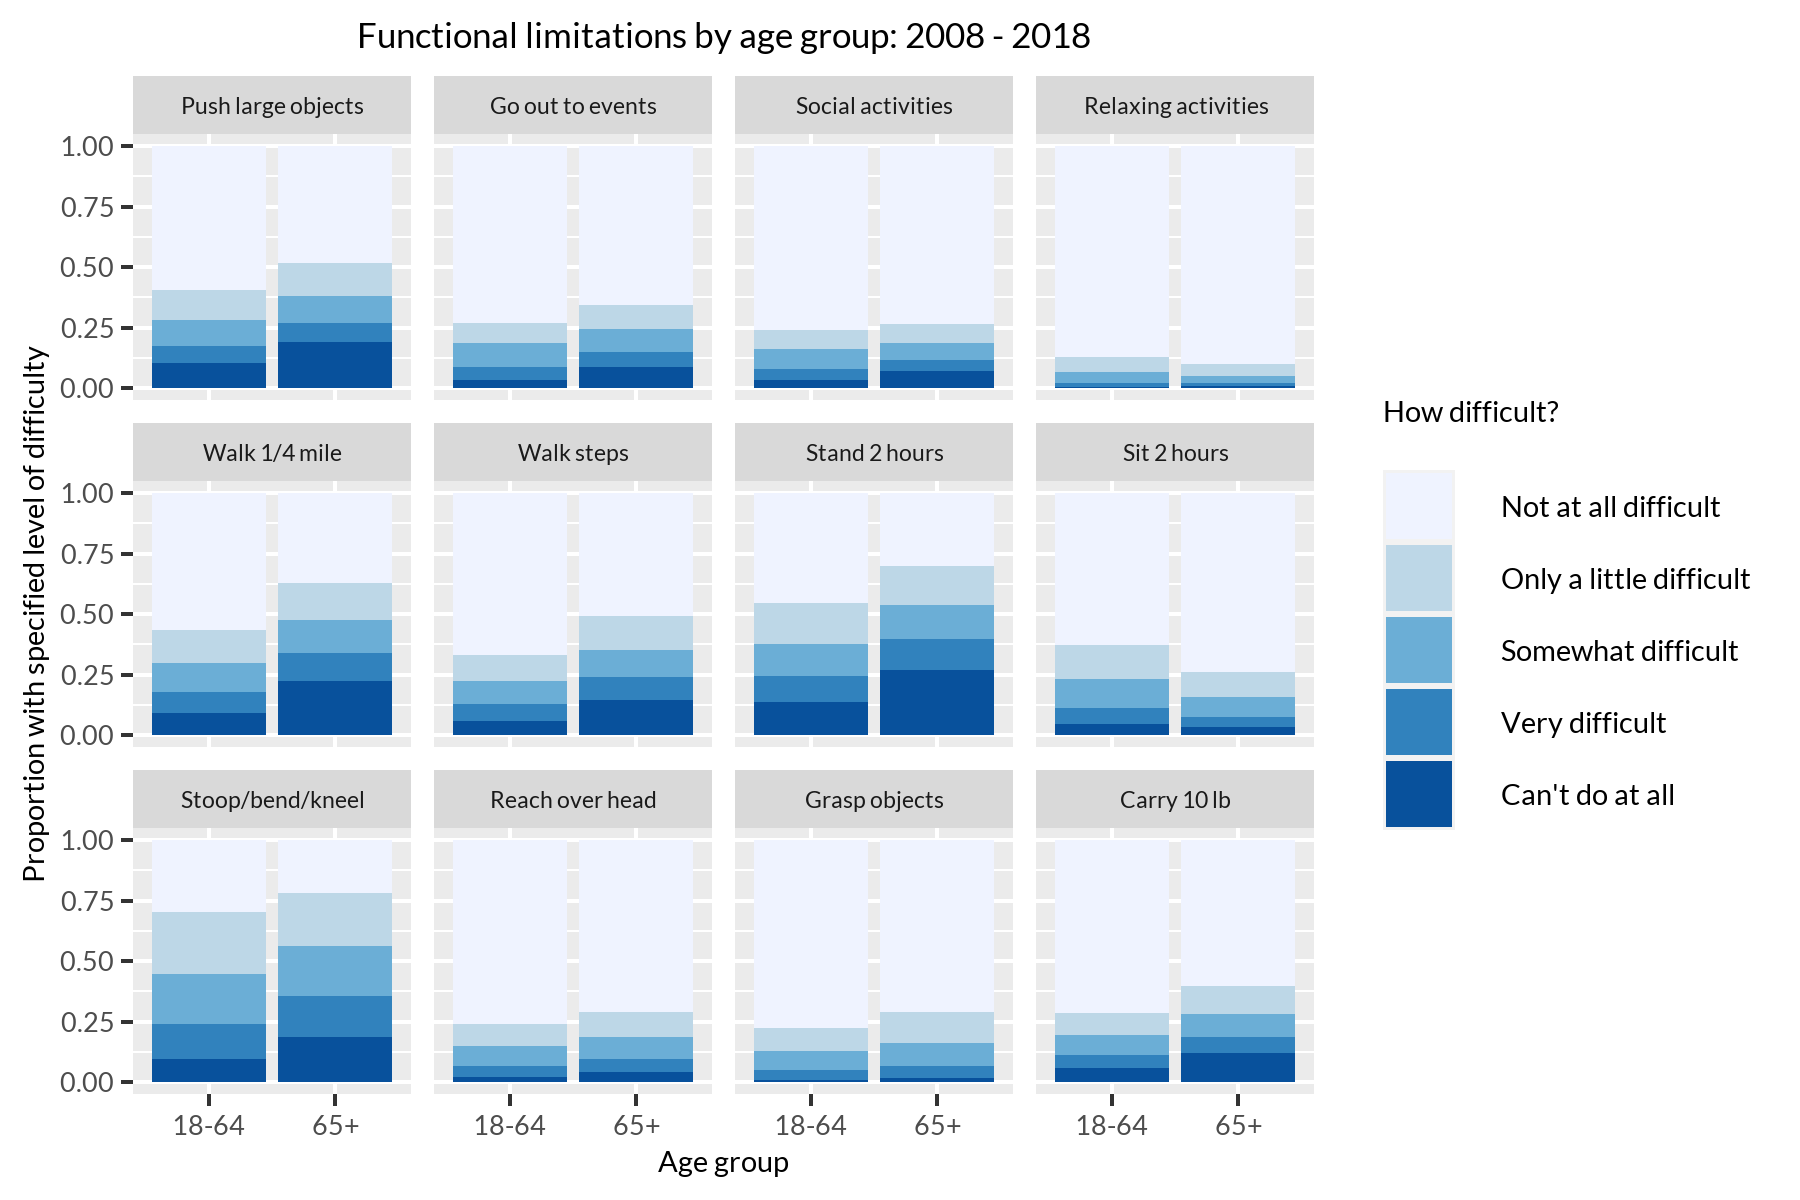 Stacked bar graph of functional limitations by age group, where older respondents have more difficulty with activities such as stooping, standing, and walking.